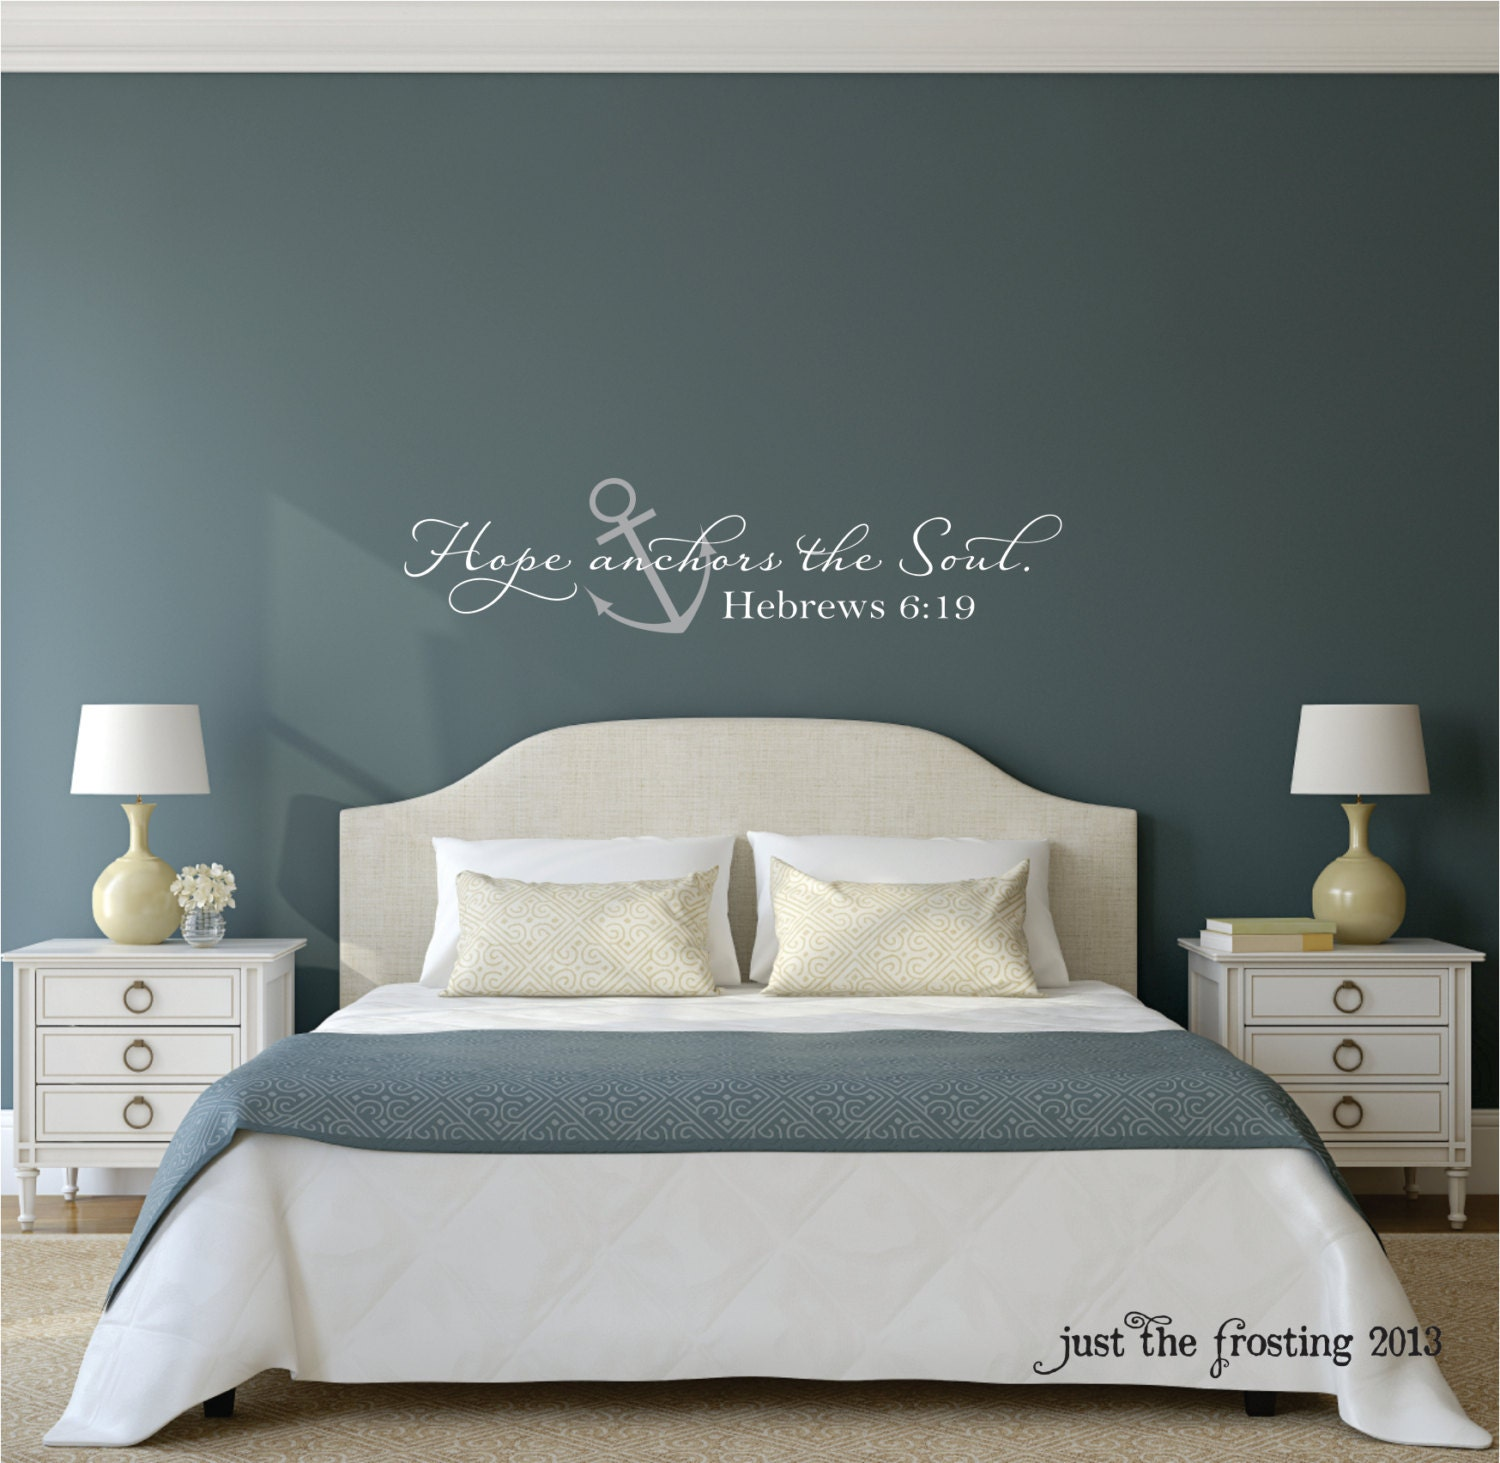 Hope anchors the soul wall decal hebrews 619 vinyl wall zoom amipublicfo Image collections